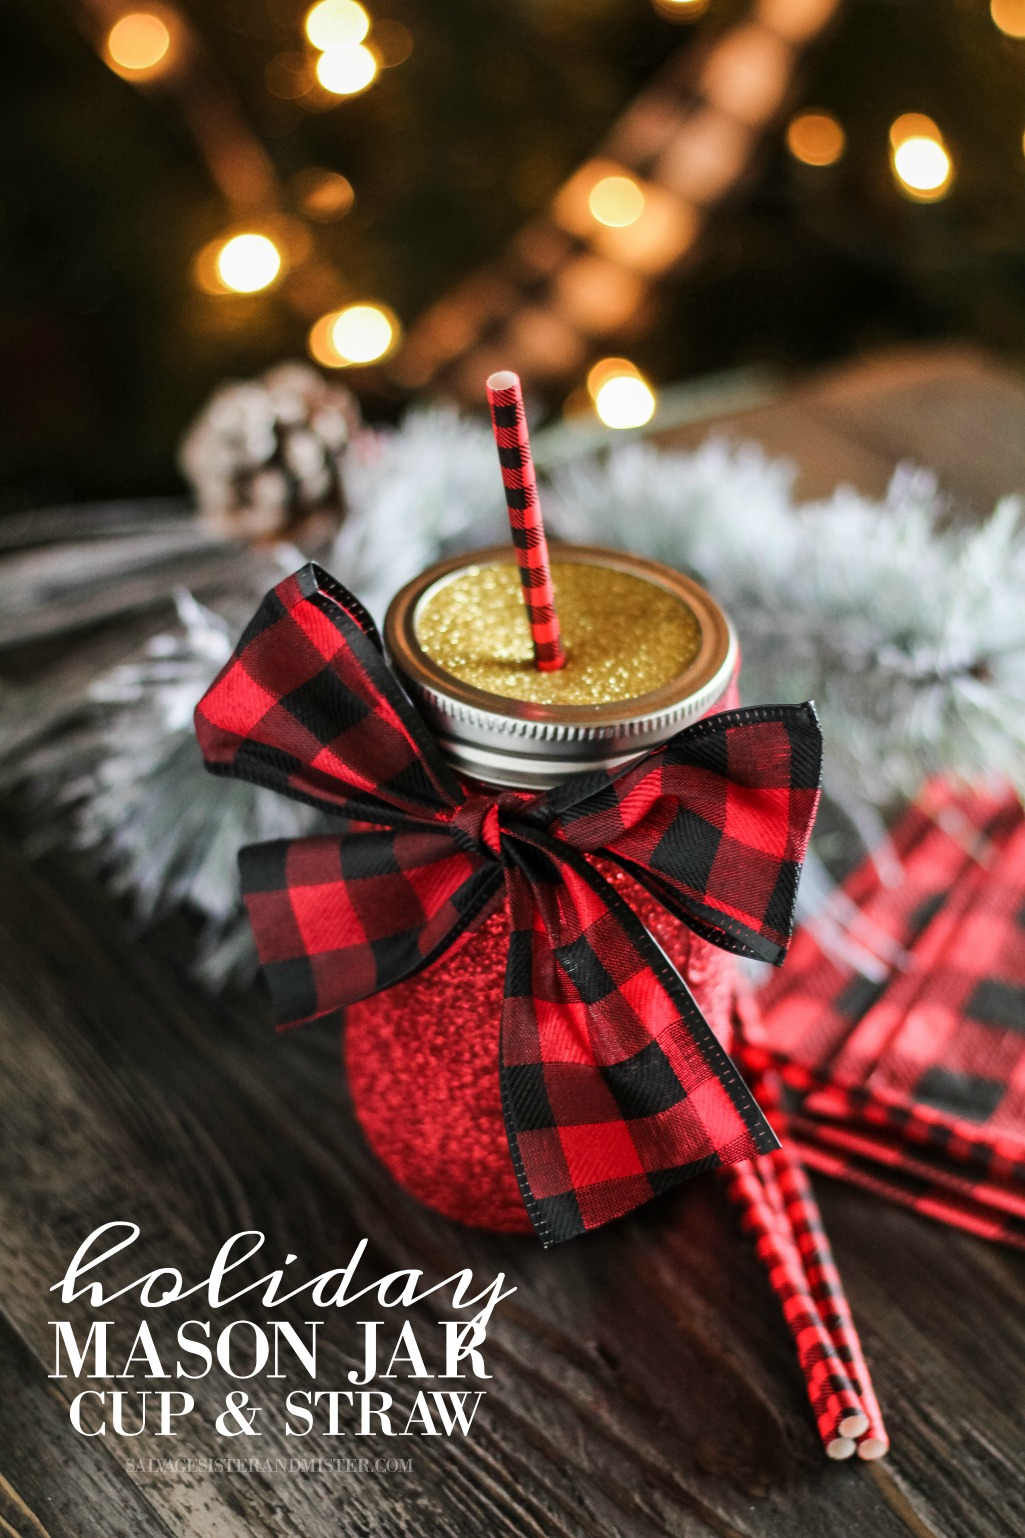 Quick Christmas craft - holiday mason jar drinking cup with dtraw.  This diy project is great to make with a group of friends (think lasies craft night) or to do as a family.  Make them for your Christmas morning breakfast or to give as a gift.  This full tutorial is on salvagesisterandmister.com